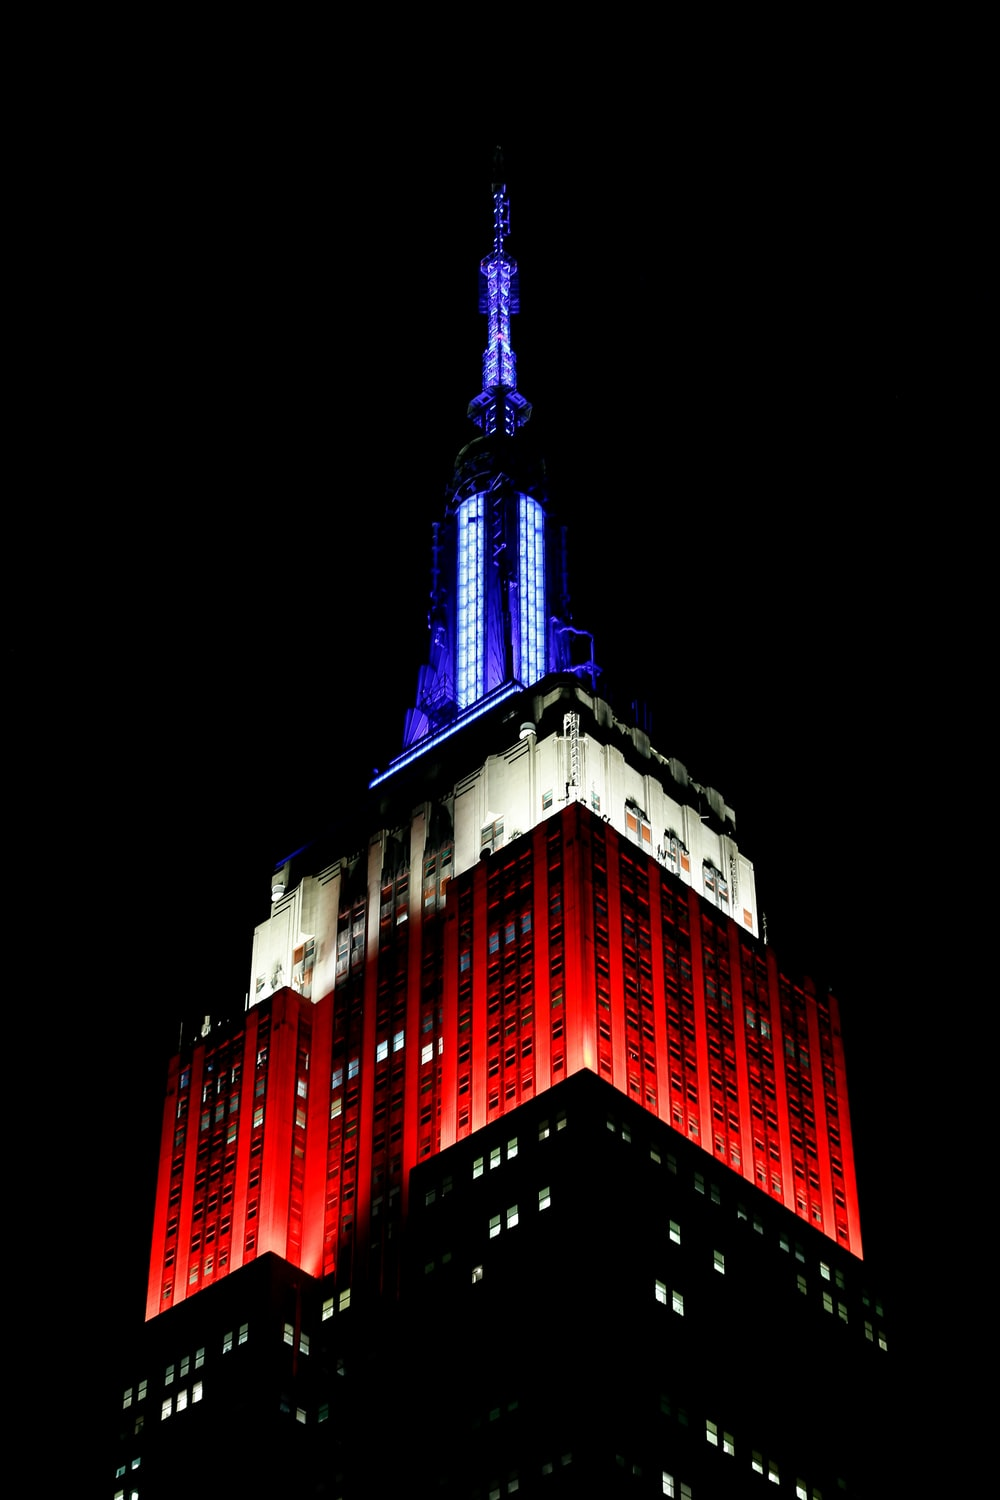 architectural photography of red, white, and blue building